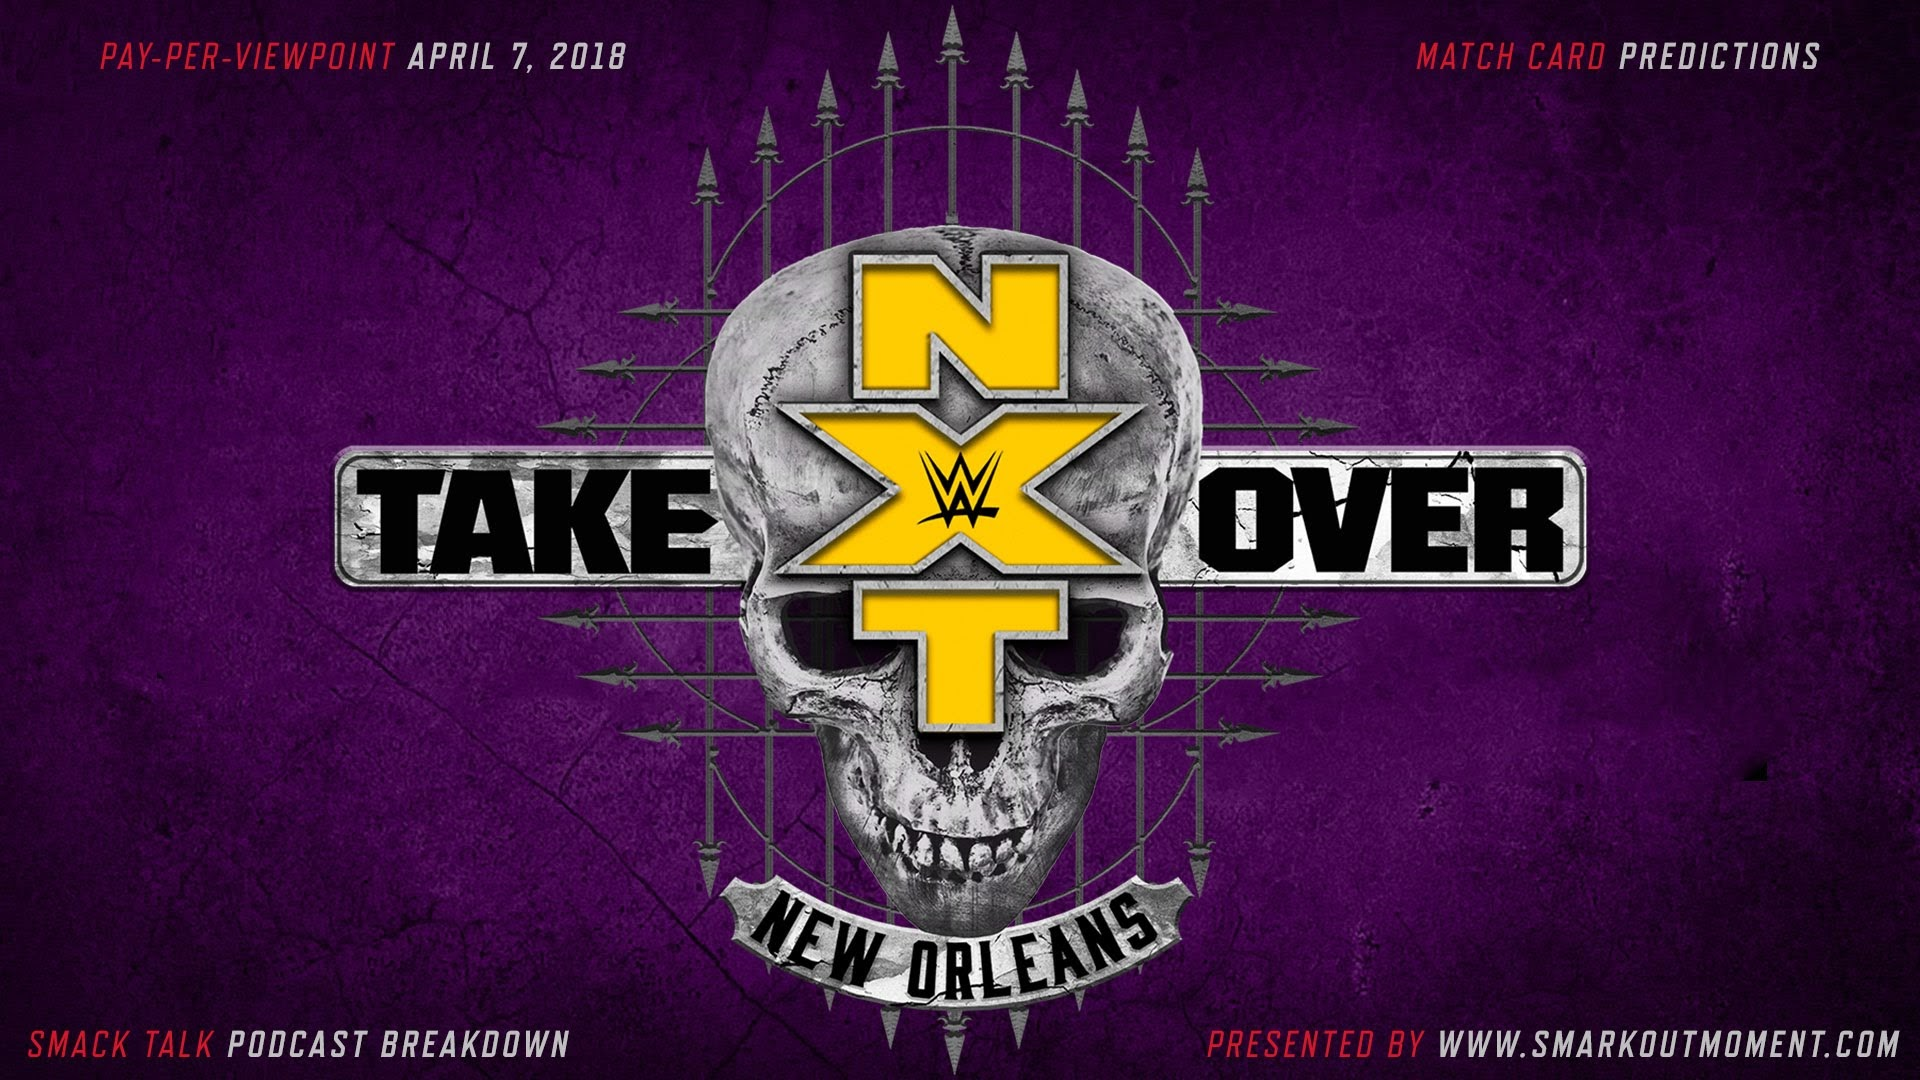 WWE NXT TakeOver: New Orleans spoilers podcast